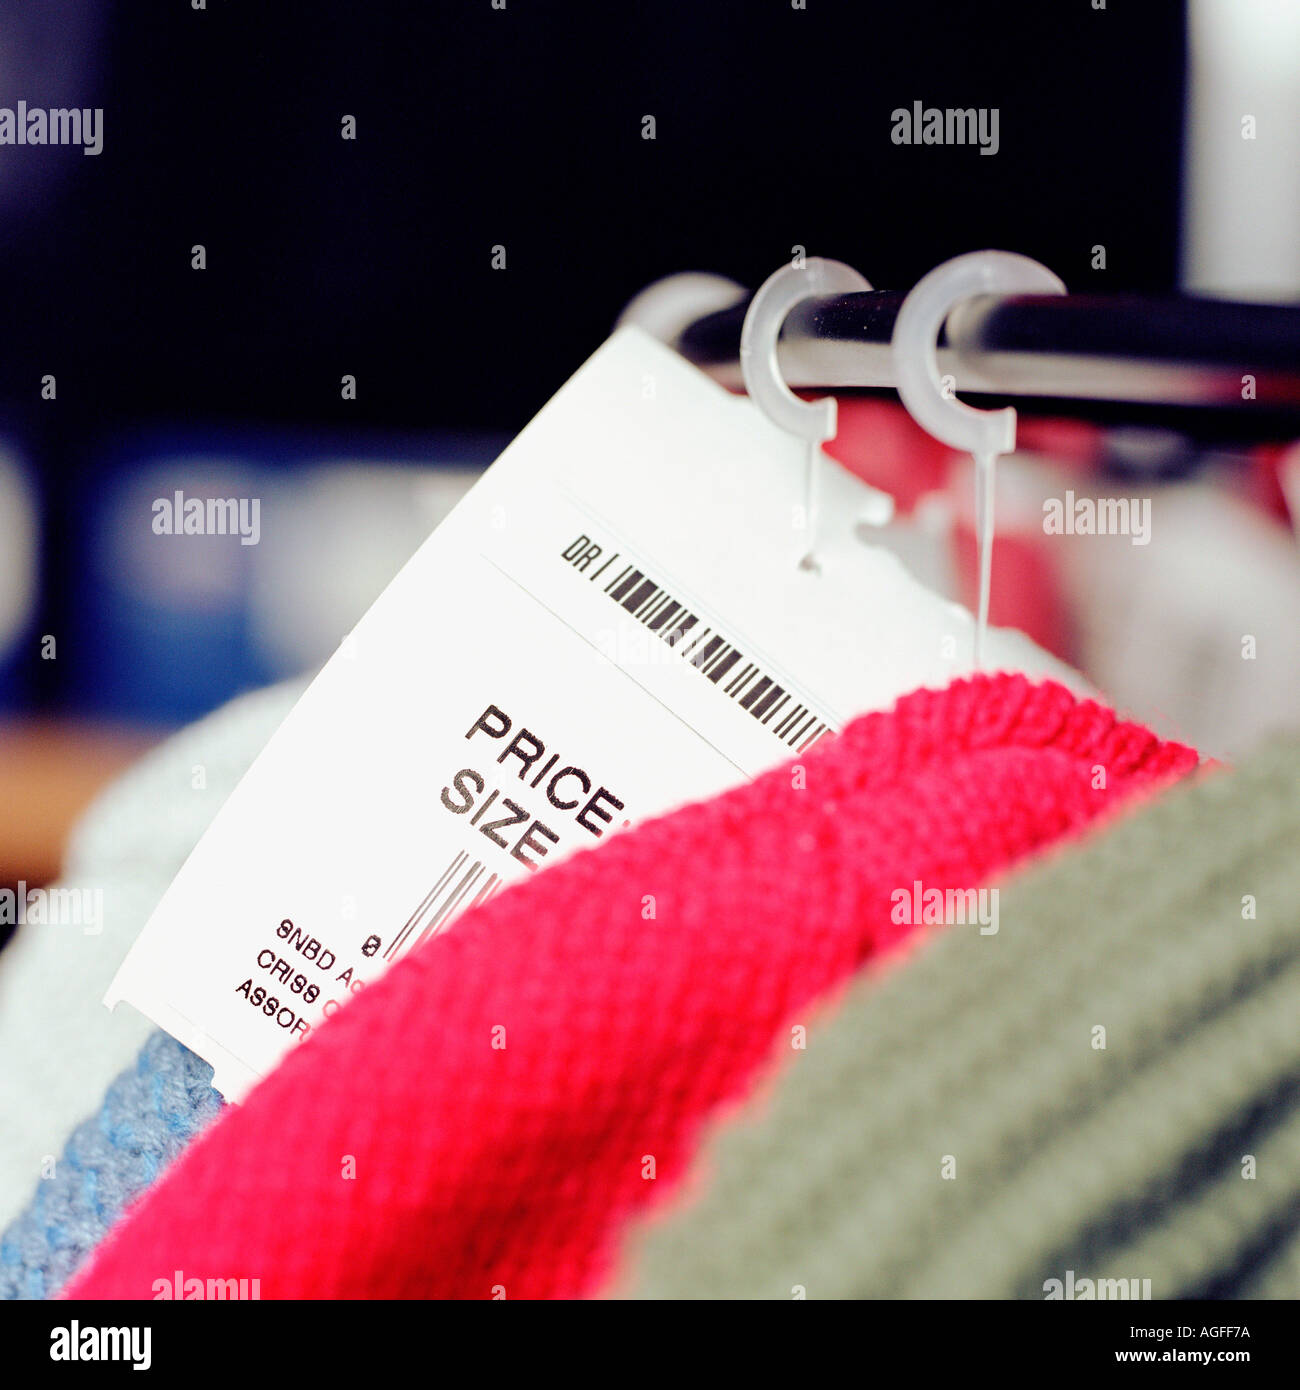 Price tag on clothes rack - Stock Image